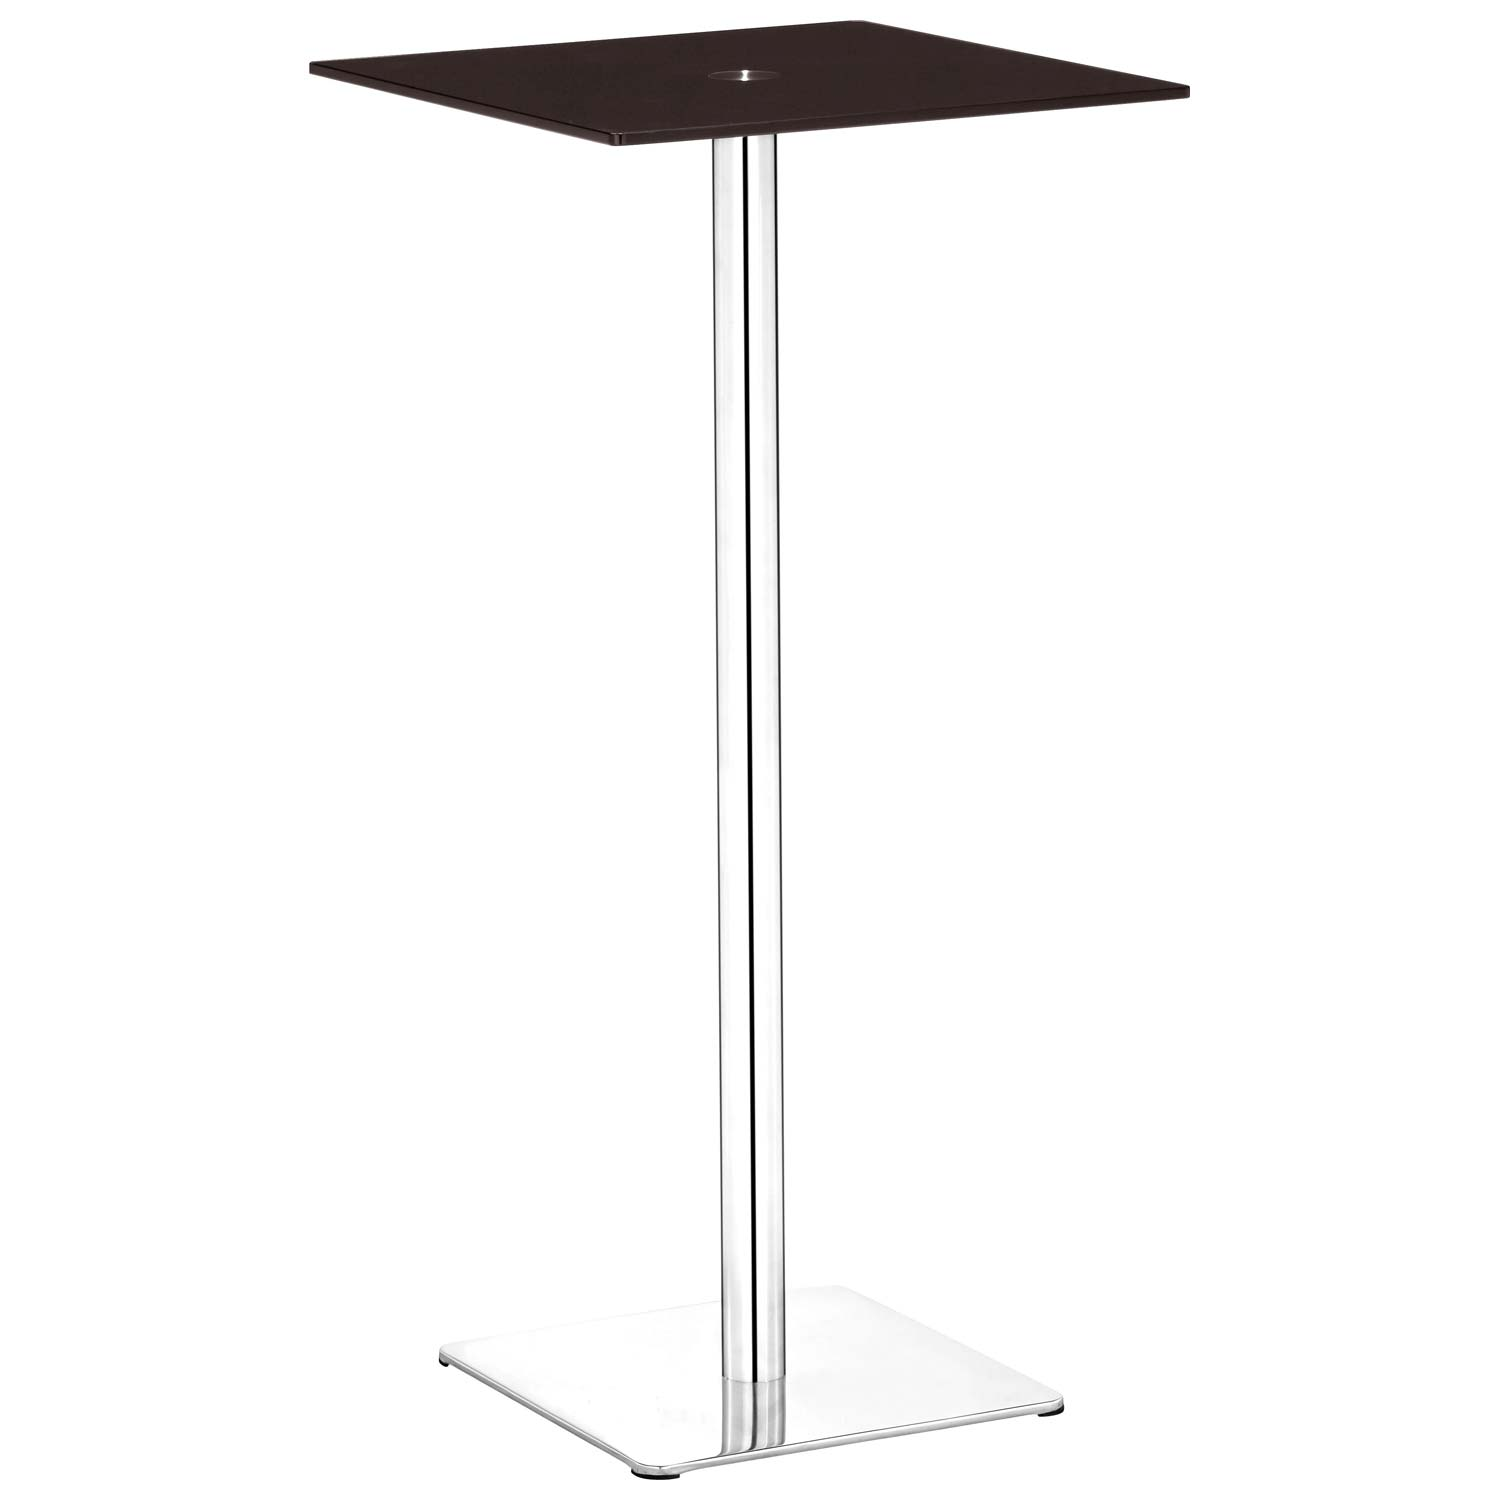 Dimensional Square Bar Table - Chrome Base, Espresso Glass